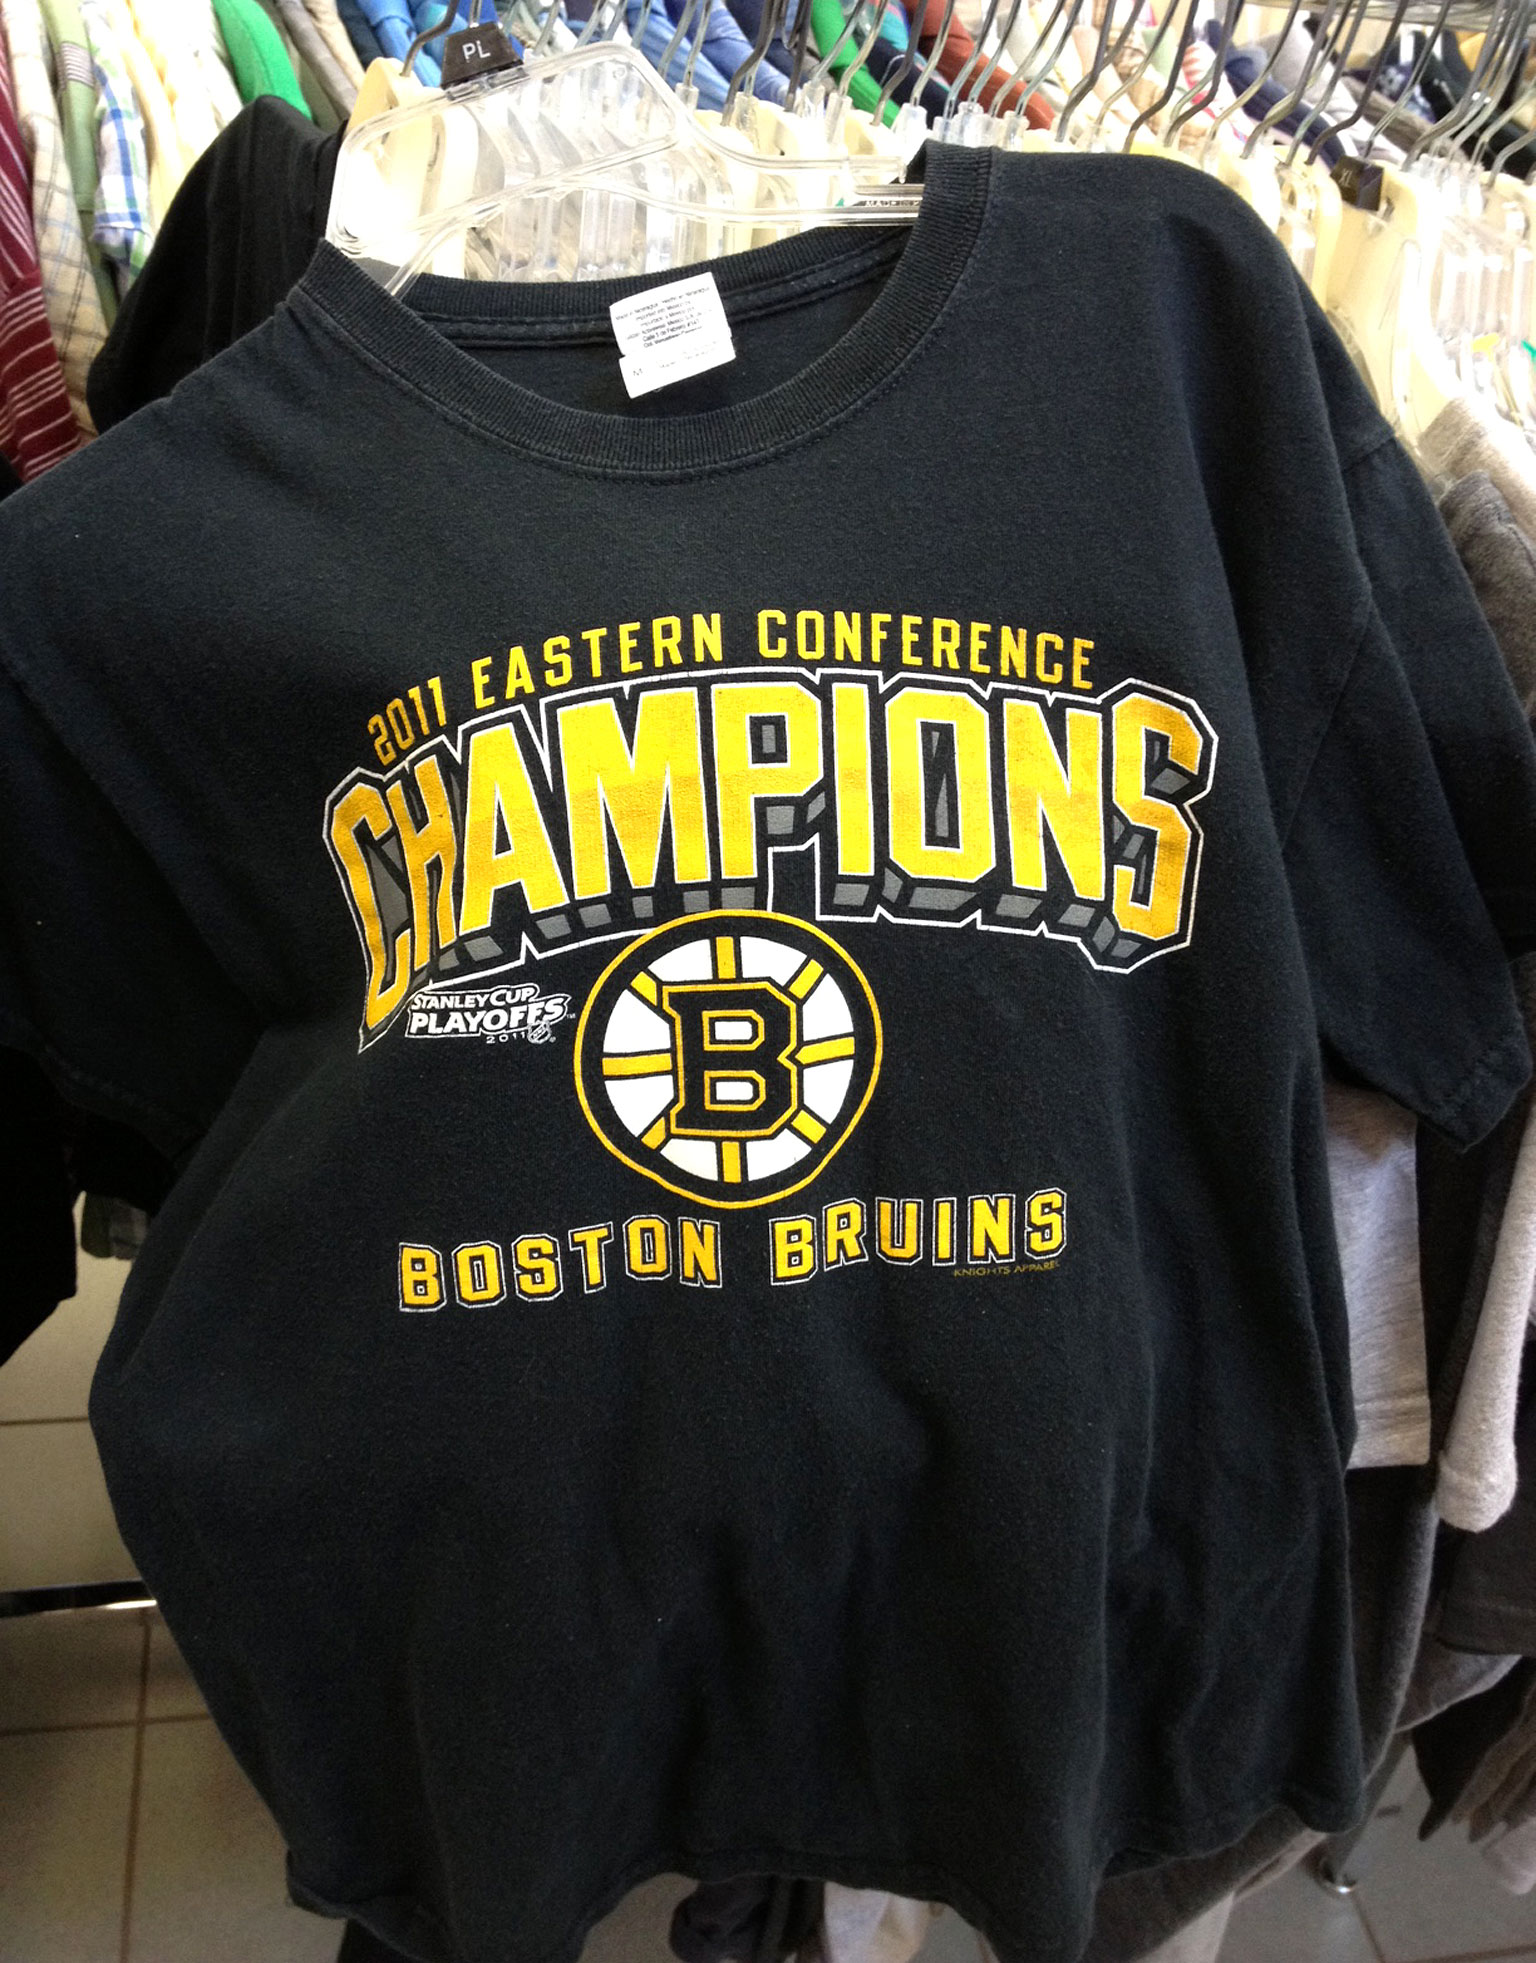 Bruins Eastern Conference champs 2011 shirt: $4